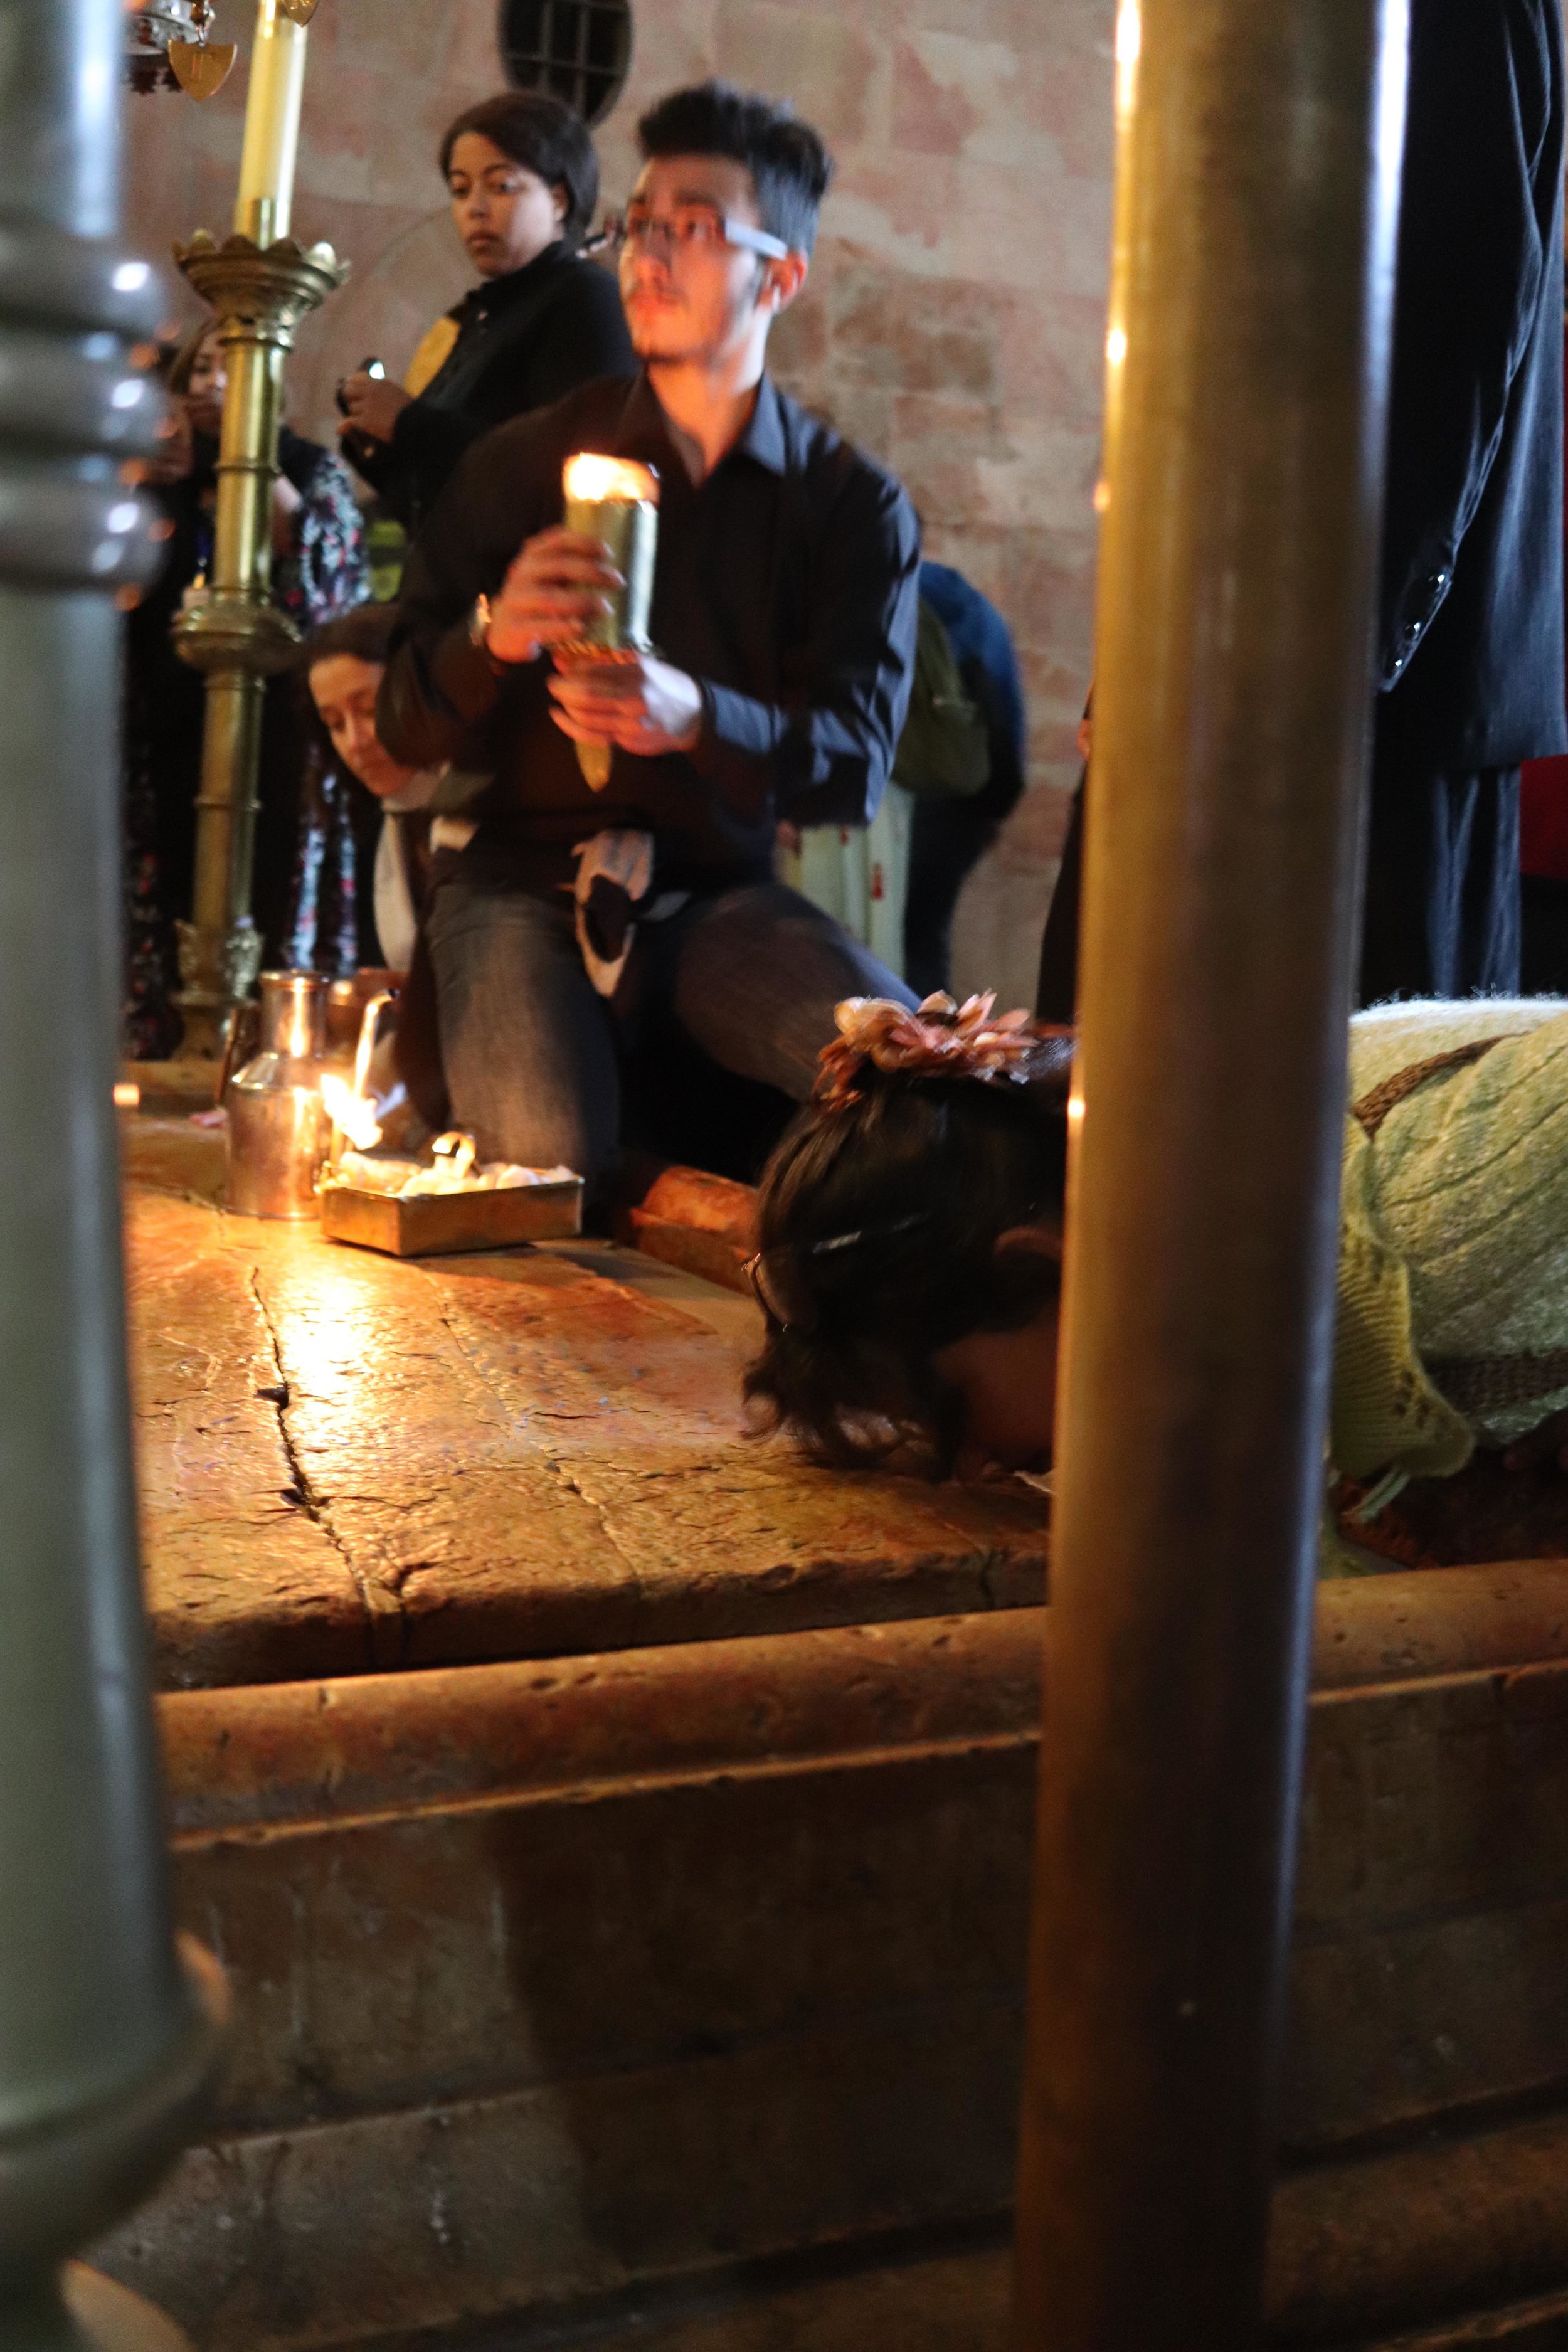 For Christians, the most holy place is the Church of the Holy Sepulchre, built upon the sites where Jesus was crucified, buried and resurrected. The coolest part – you can touch all the sites. No ropes, no guards, no alarms.